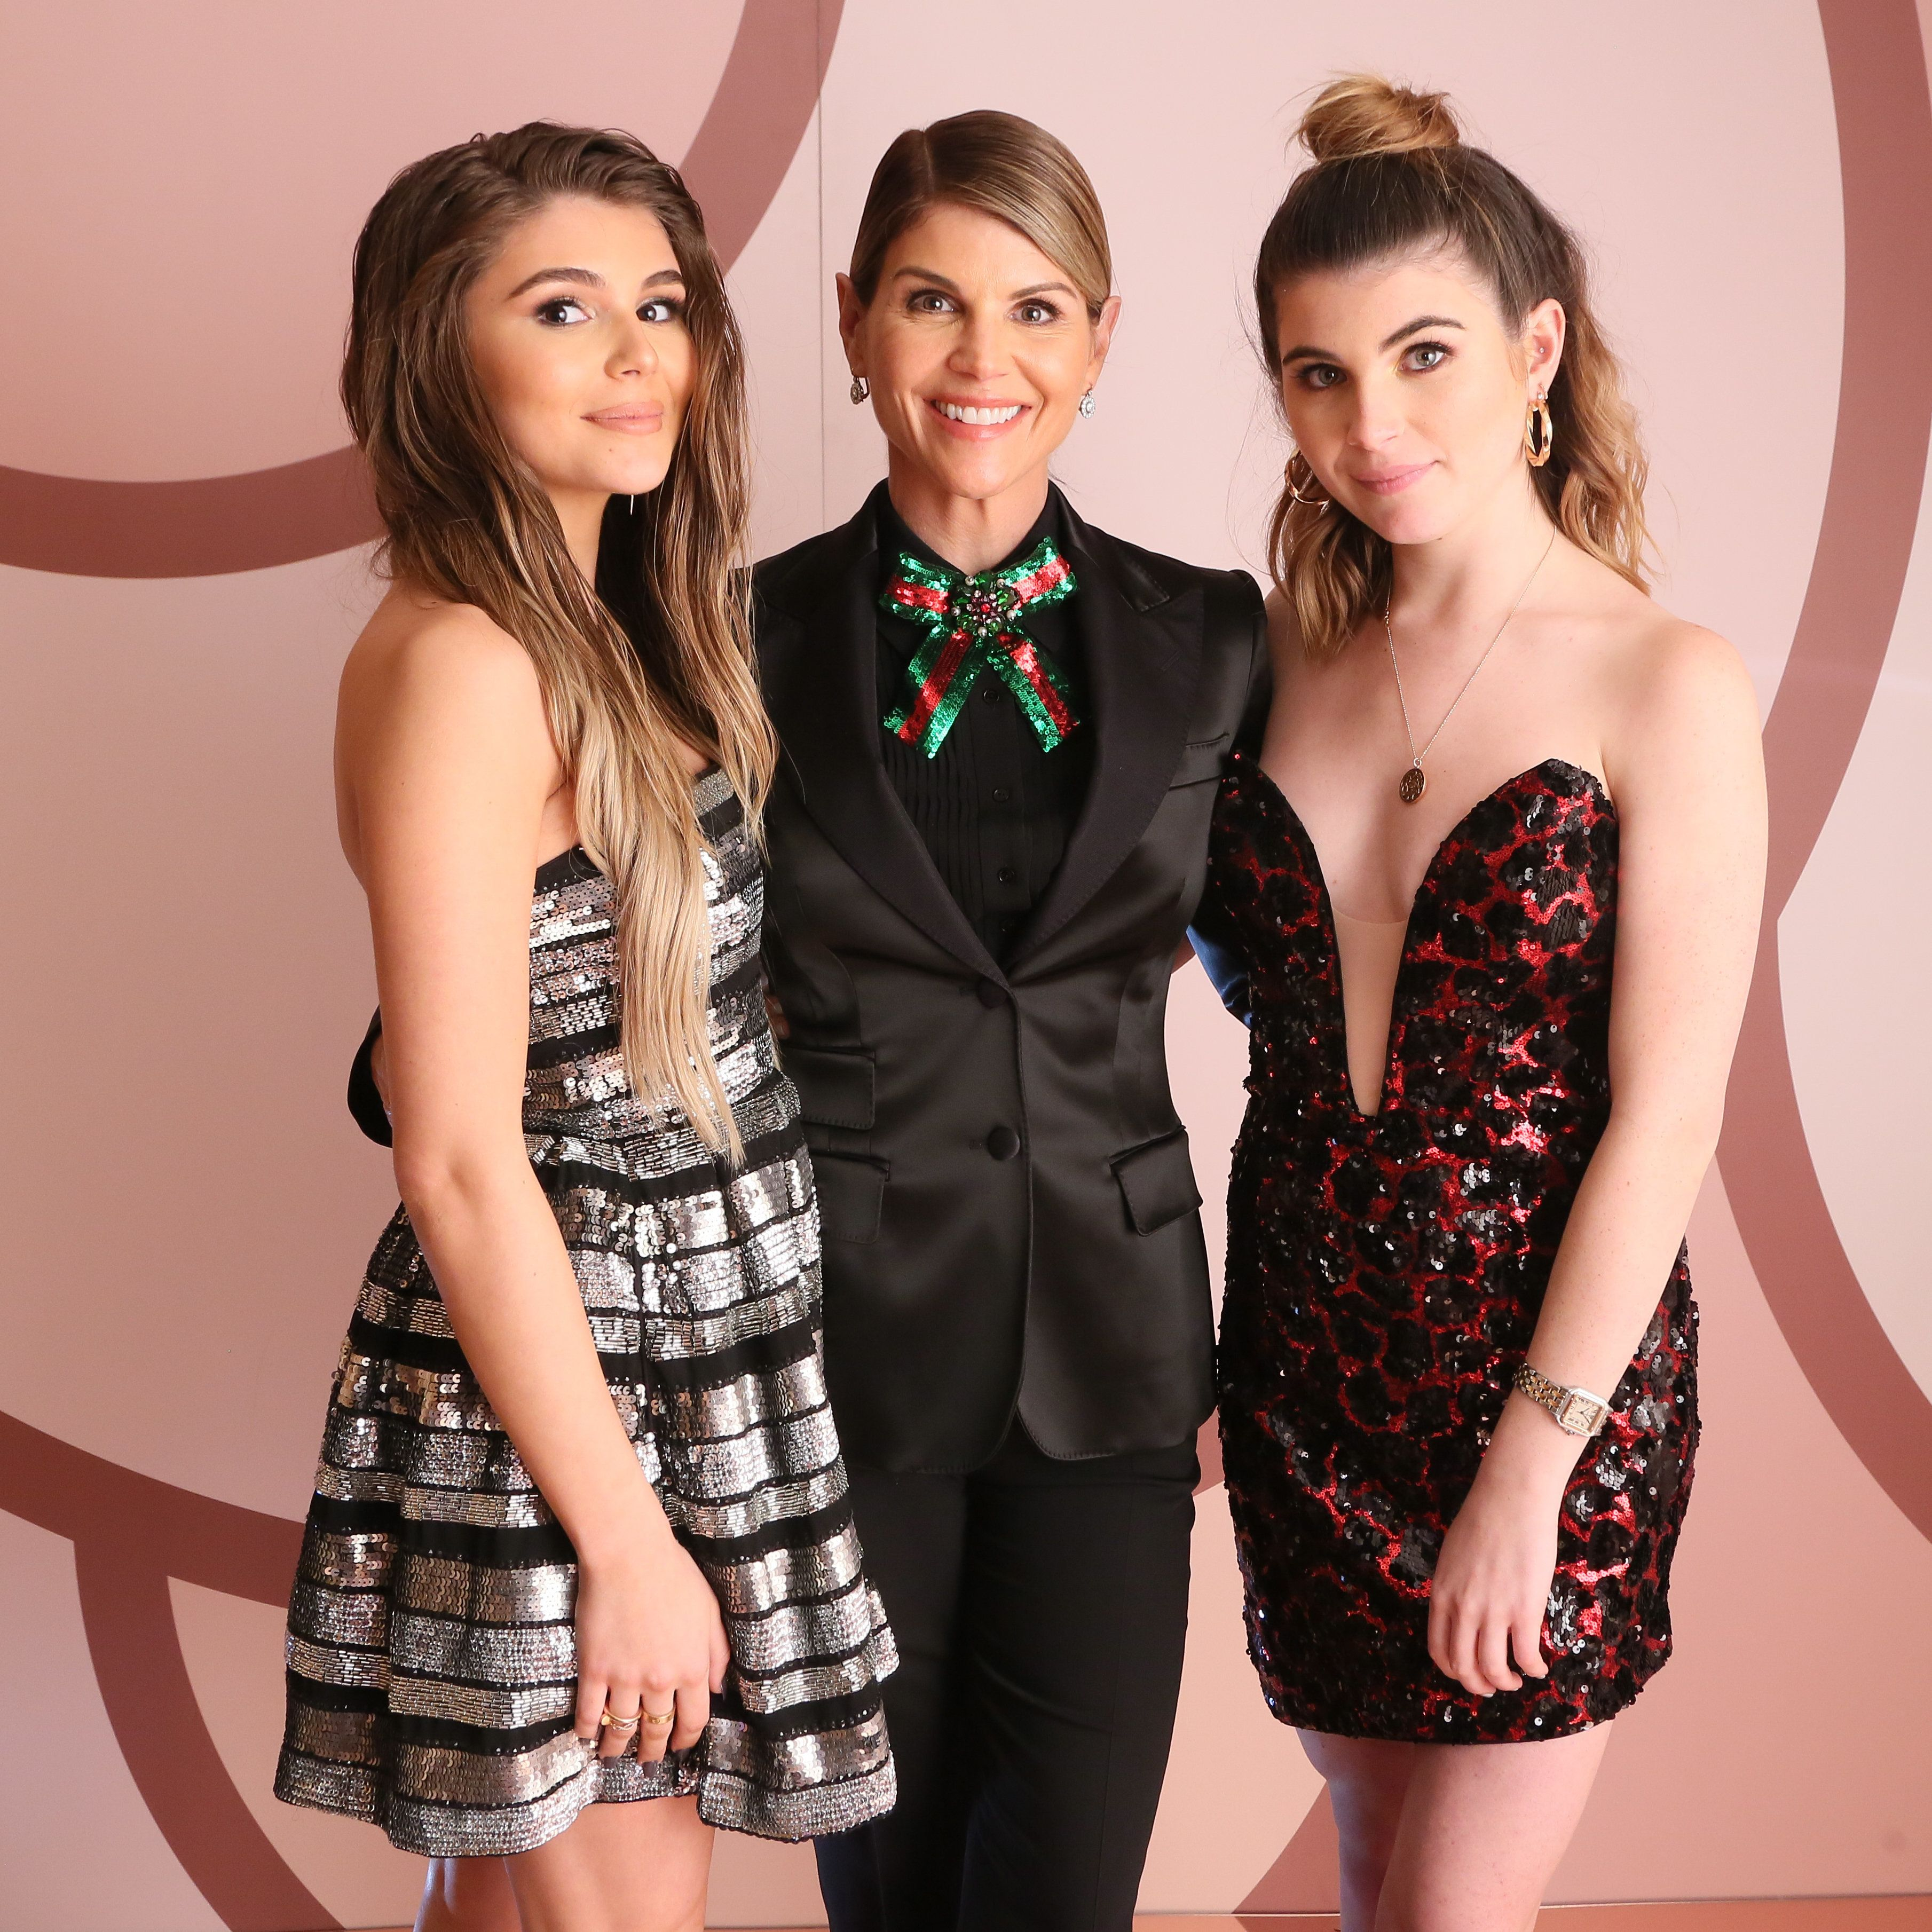 WEST HOLLYWOOD, CA - DECEMBER 14:  (L-R) Olivia Jade Giannulli, Lori Loughlin and Isabella Rose Giannulli celebrates the Olivia Jade X Sephora Collection Palette Collaboration Launching Online at Sephora.com on December 14, 2018 in West Hollywood, California.  (Photo by Gabriel Olsen/Getty Images for Sephora Collection)